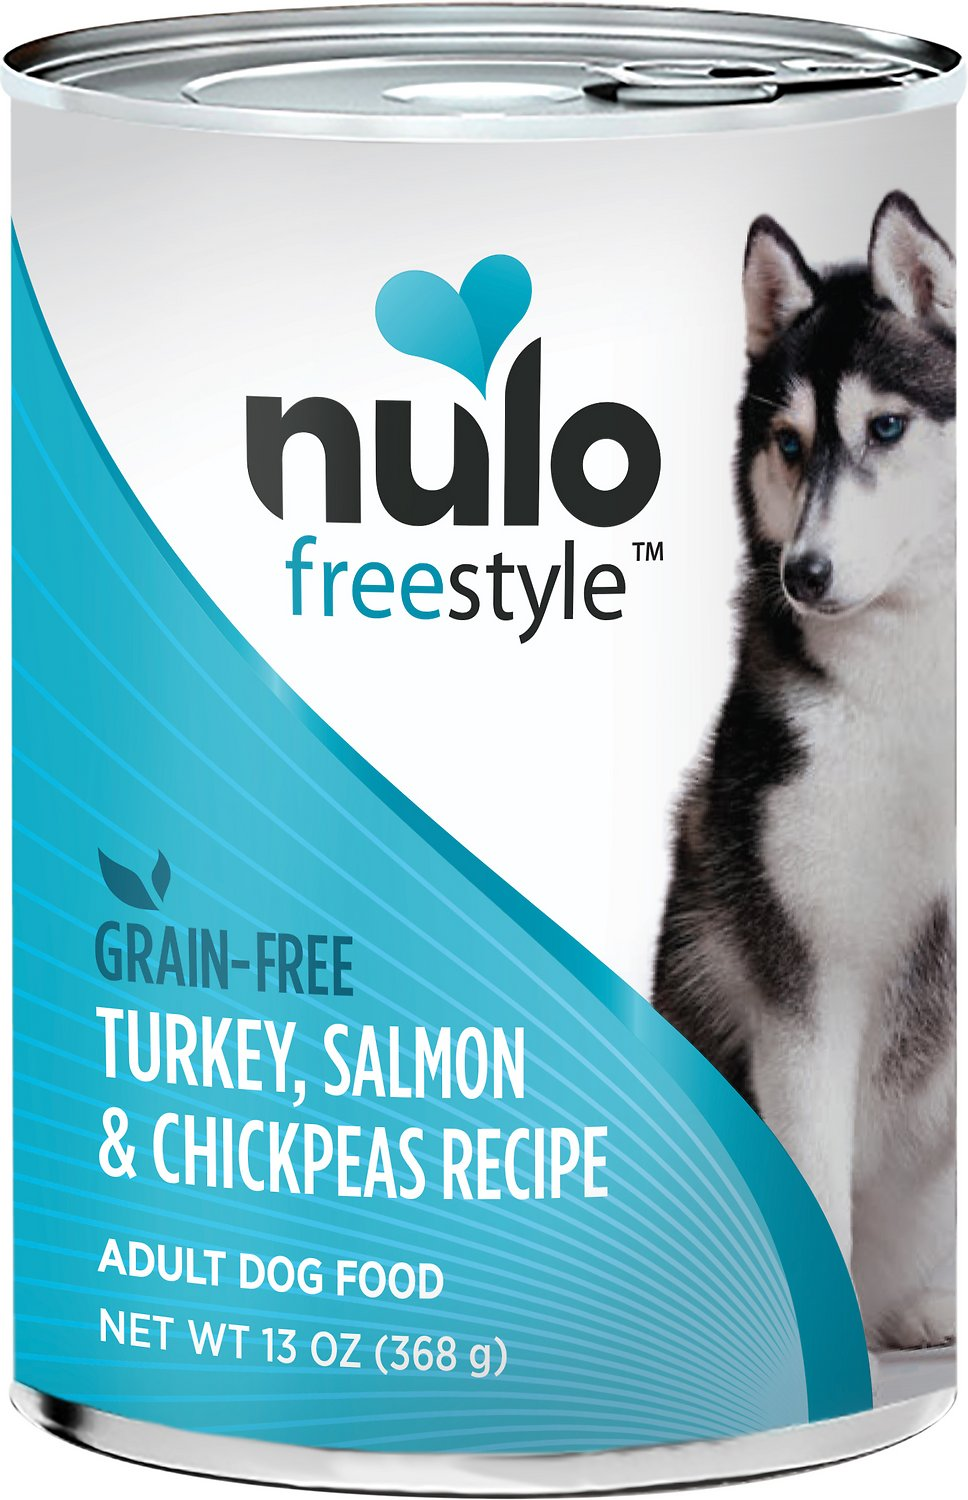 Nulo Dog Freestyle Pate Salmon & Chickpeas Recipe Grain-Free Canned Dog Food, 13-oz